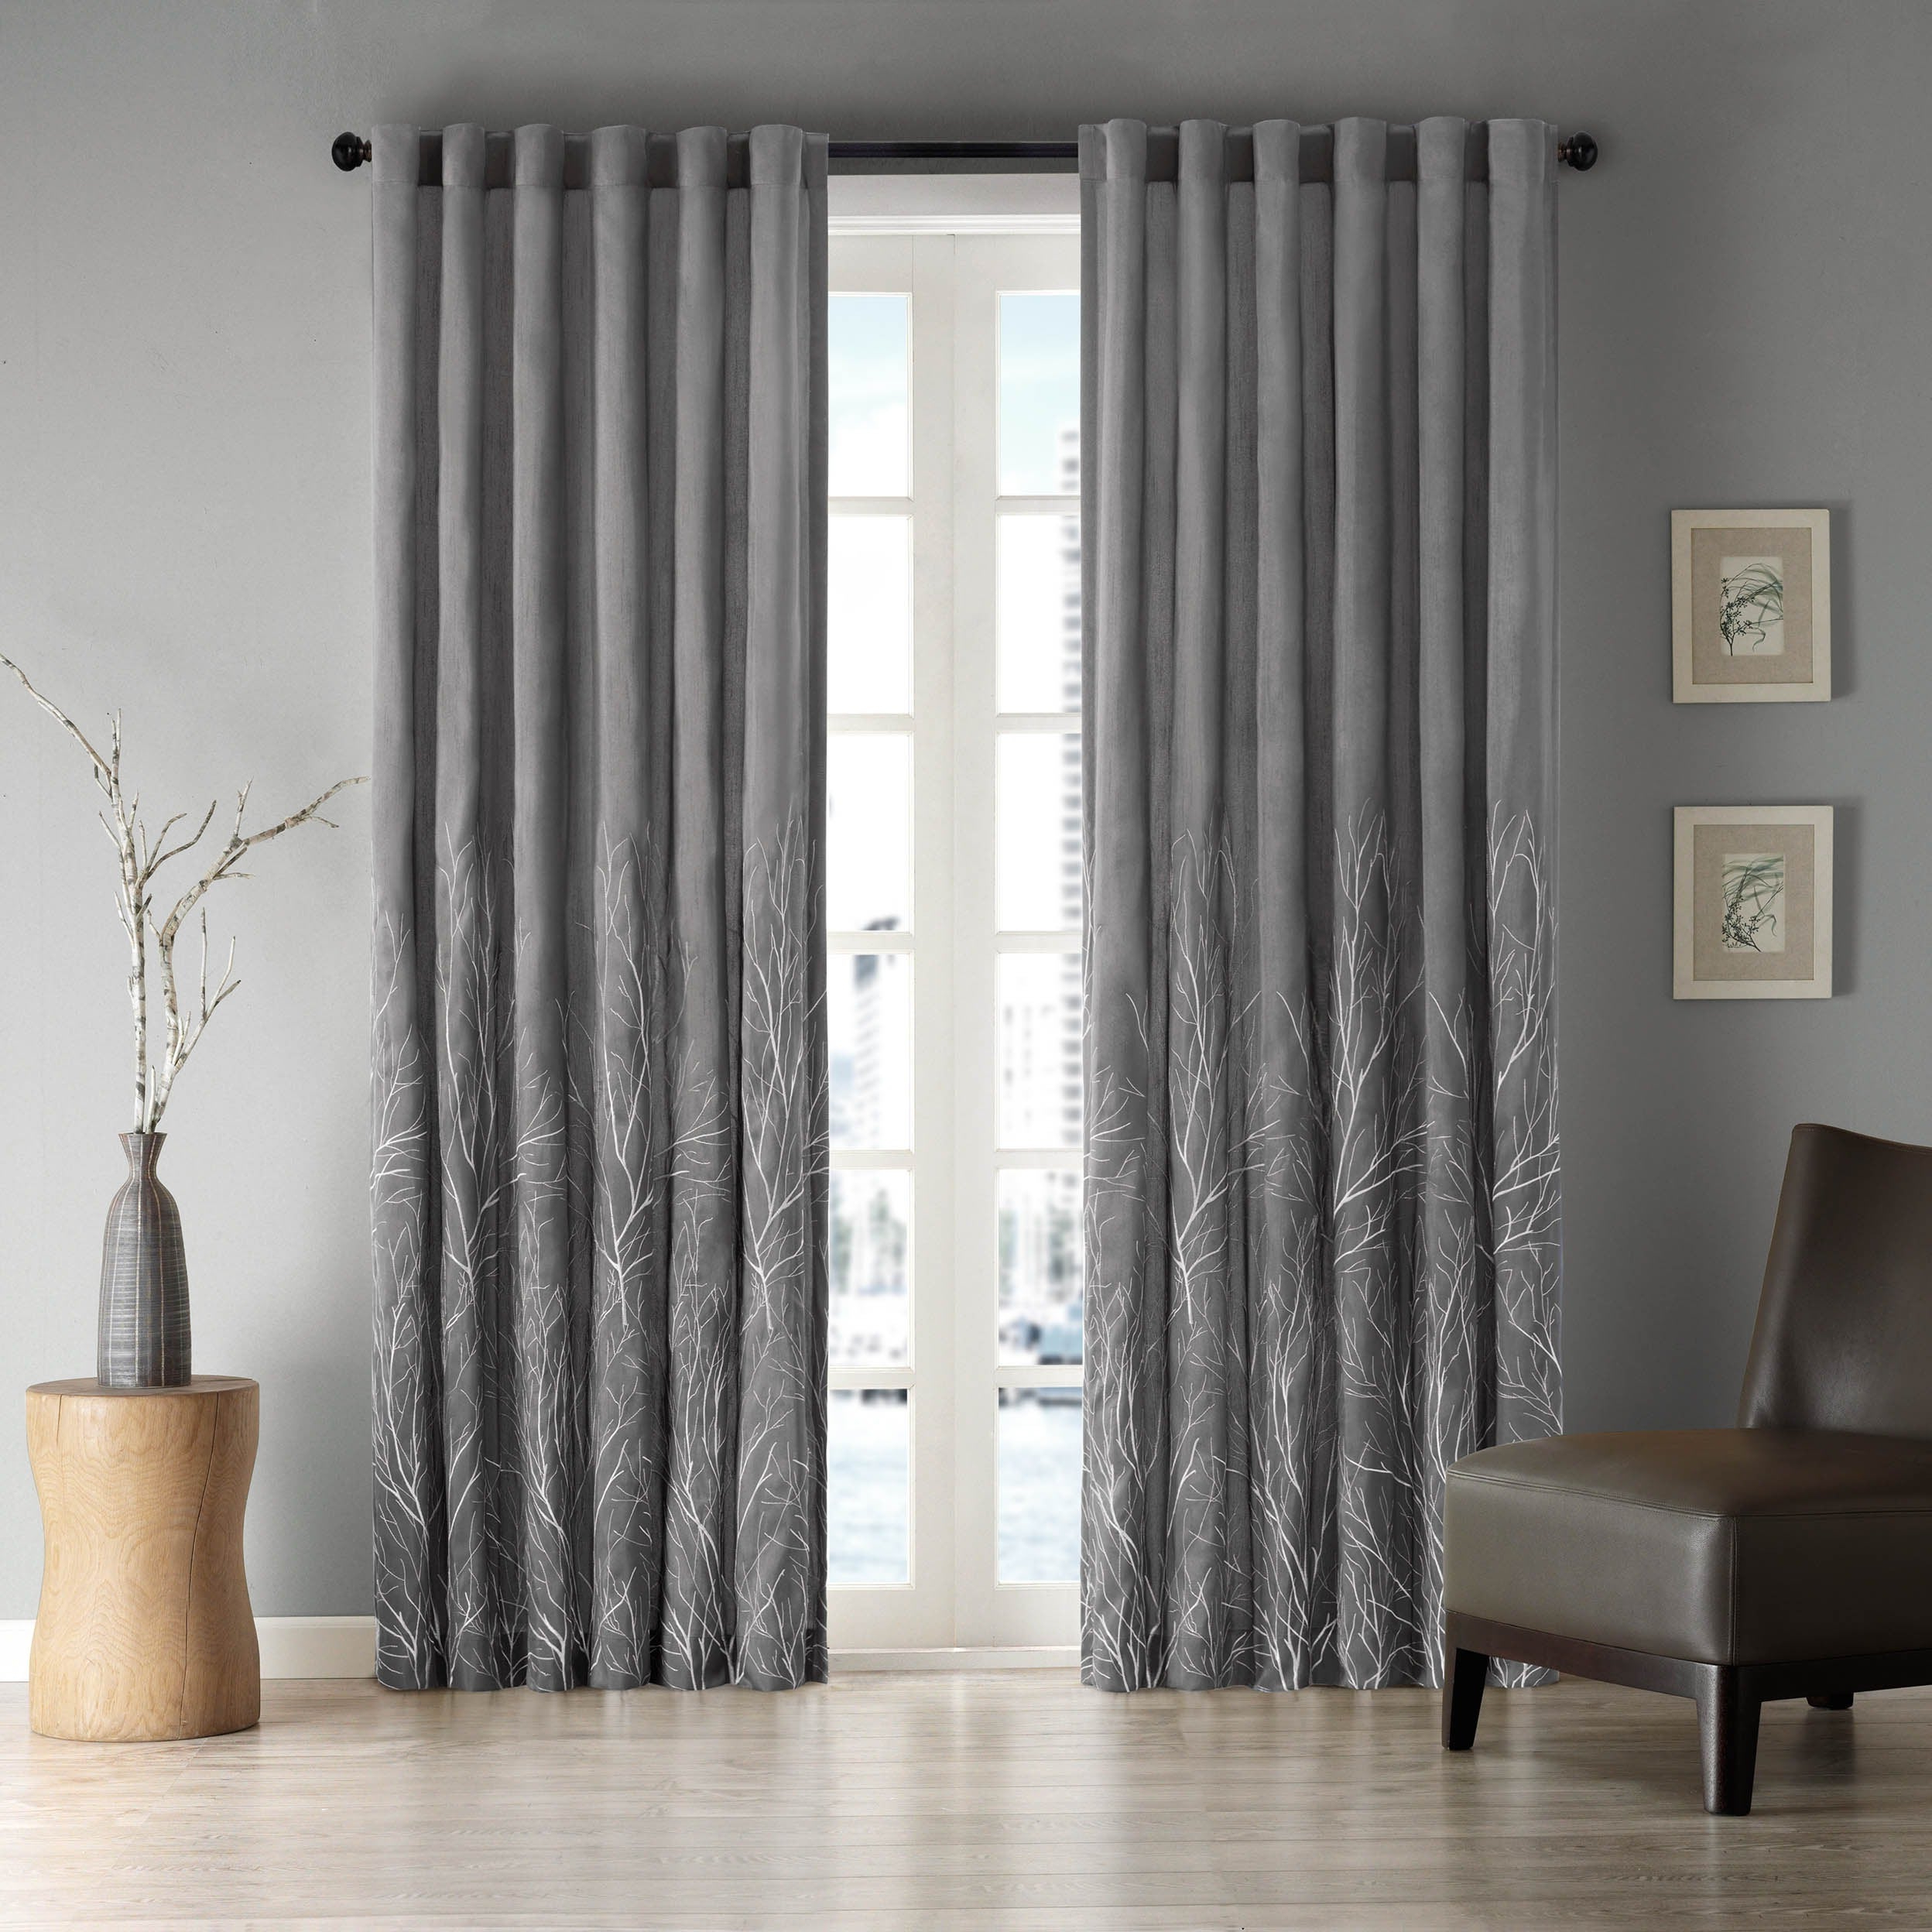 Trendy Ofloral Embroidered Faux Silk Window Curtain Panels Throughout Porch & Den Mcclugage Embroidered Faux Silk Curtain Panel (View 19 of 20)